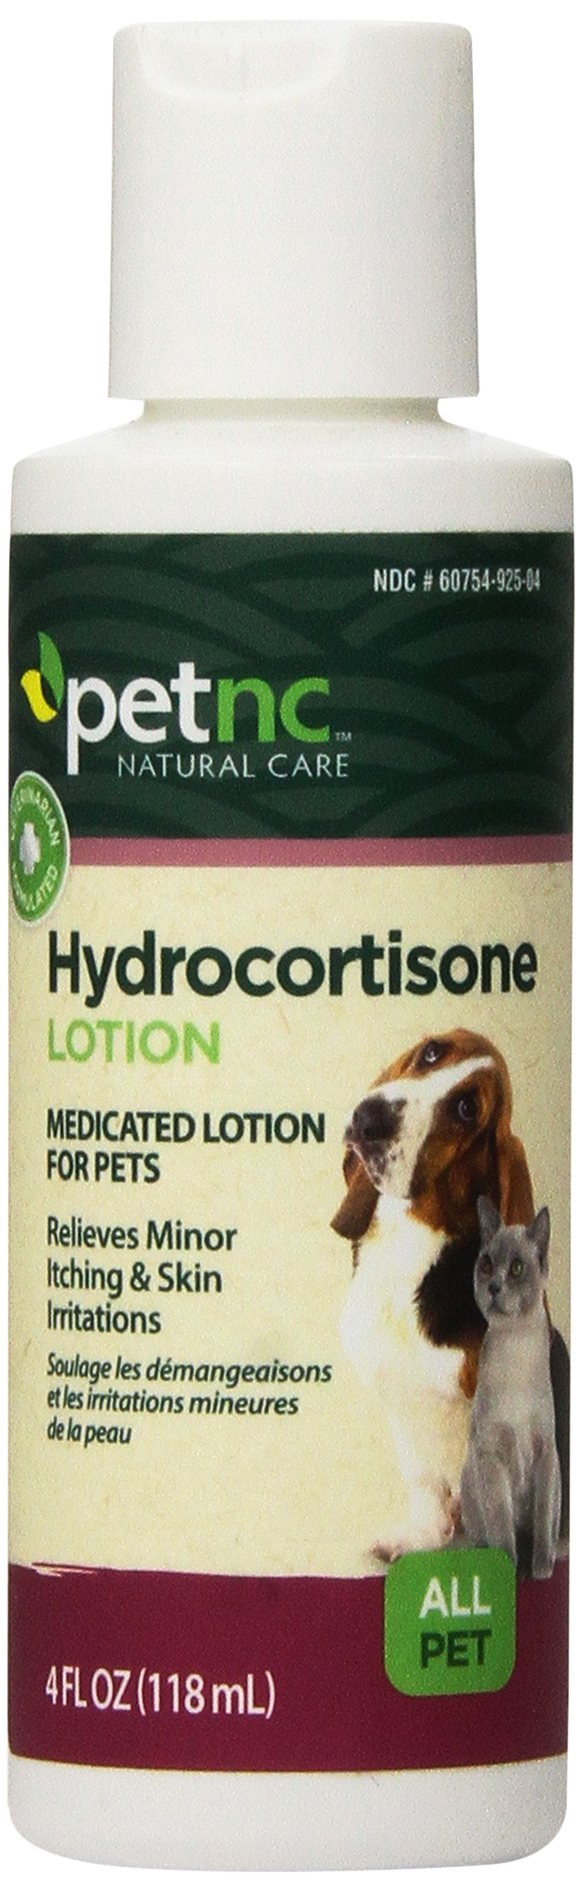 PetNC Natural Care Hydrocortisone Lotion for All Pets, 4-Ounce by PetNC Natural Care